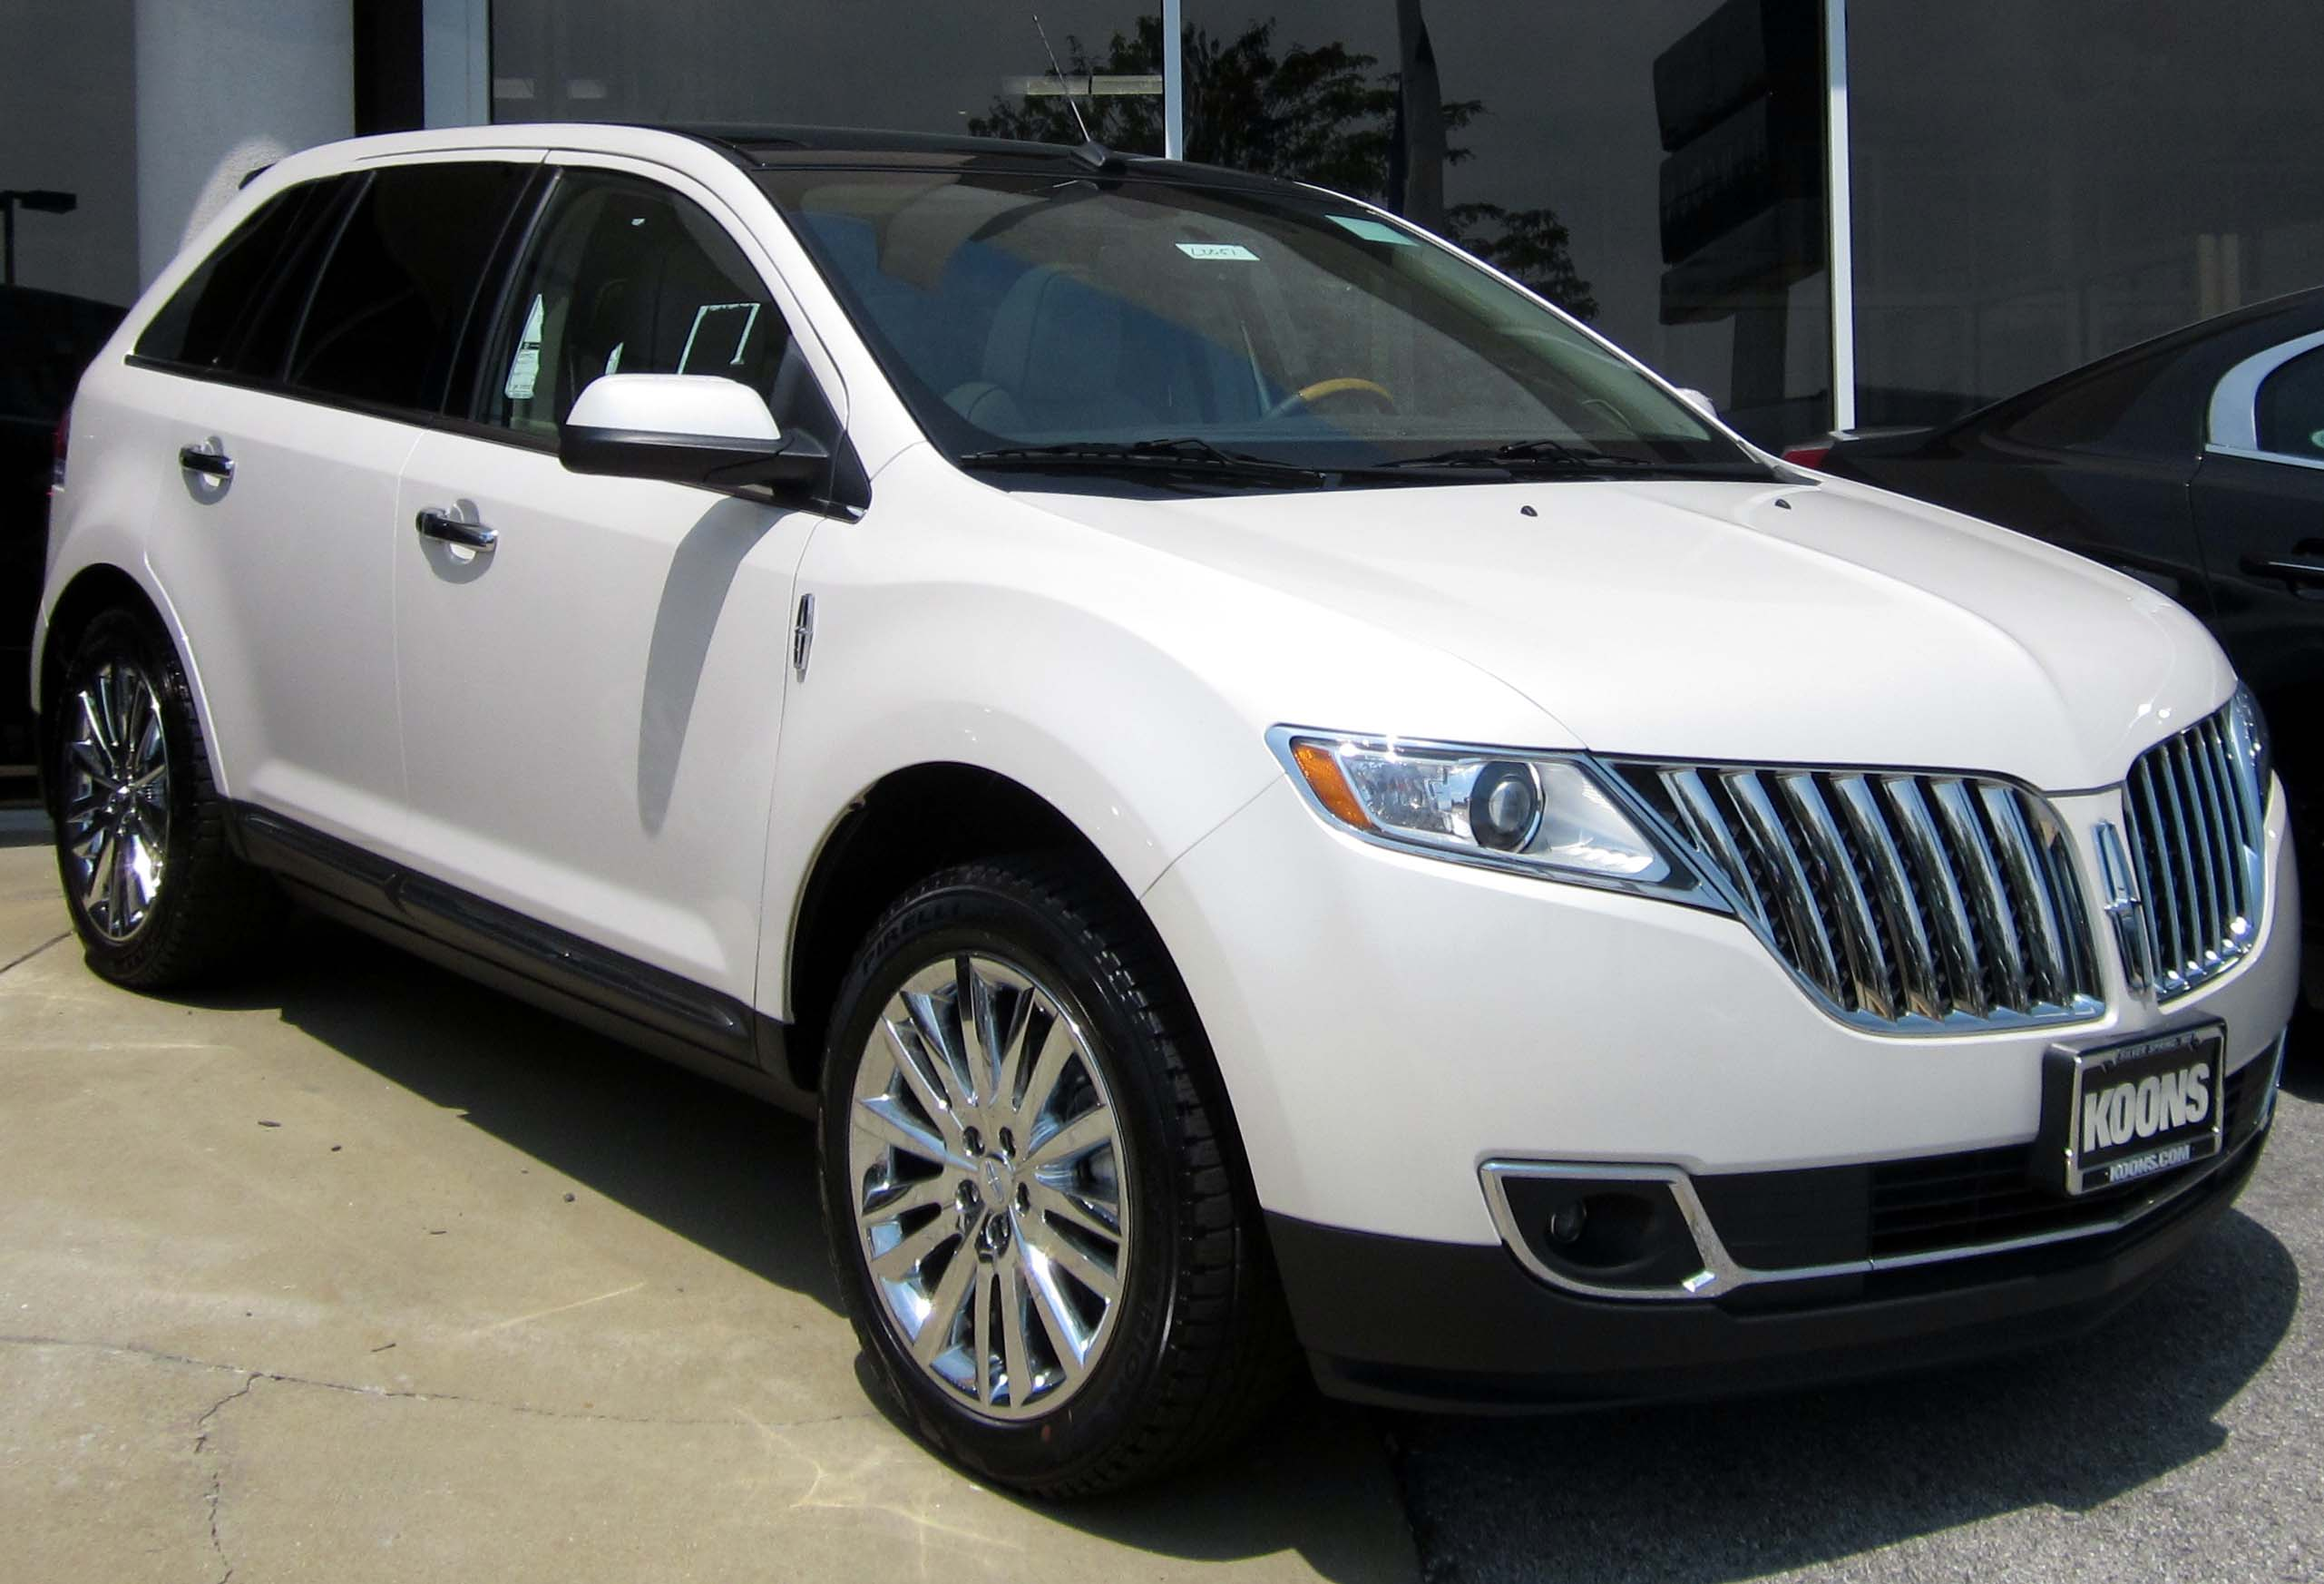 File:Lincoln MKX -- 07-11-2012.JPG - Wikimedia Commons